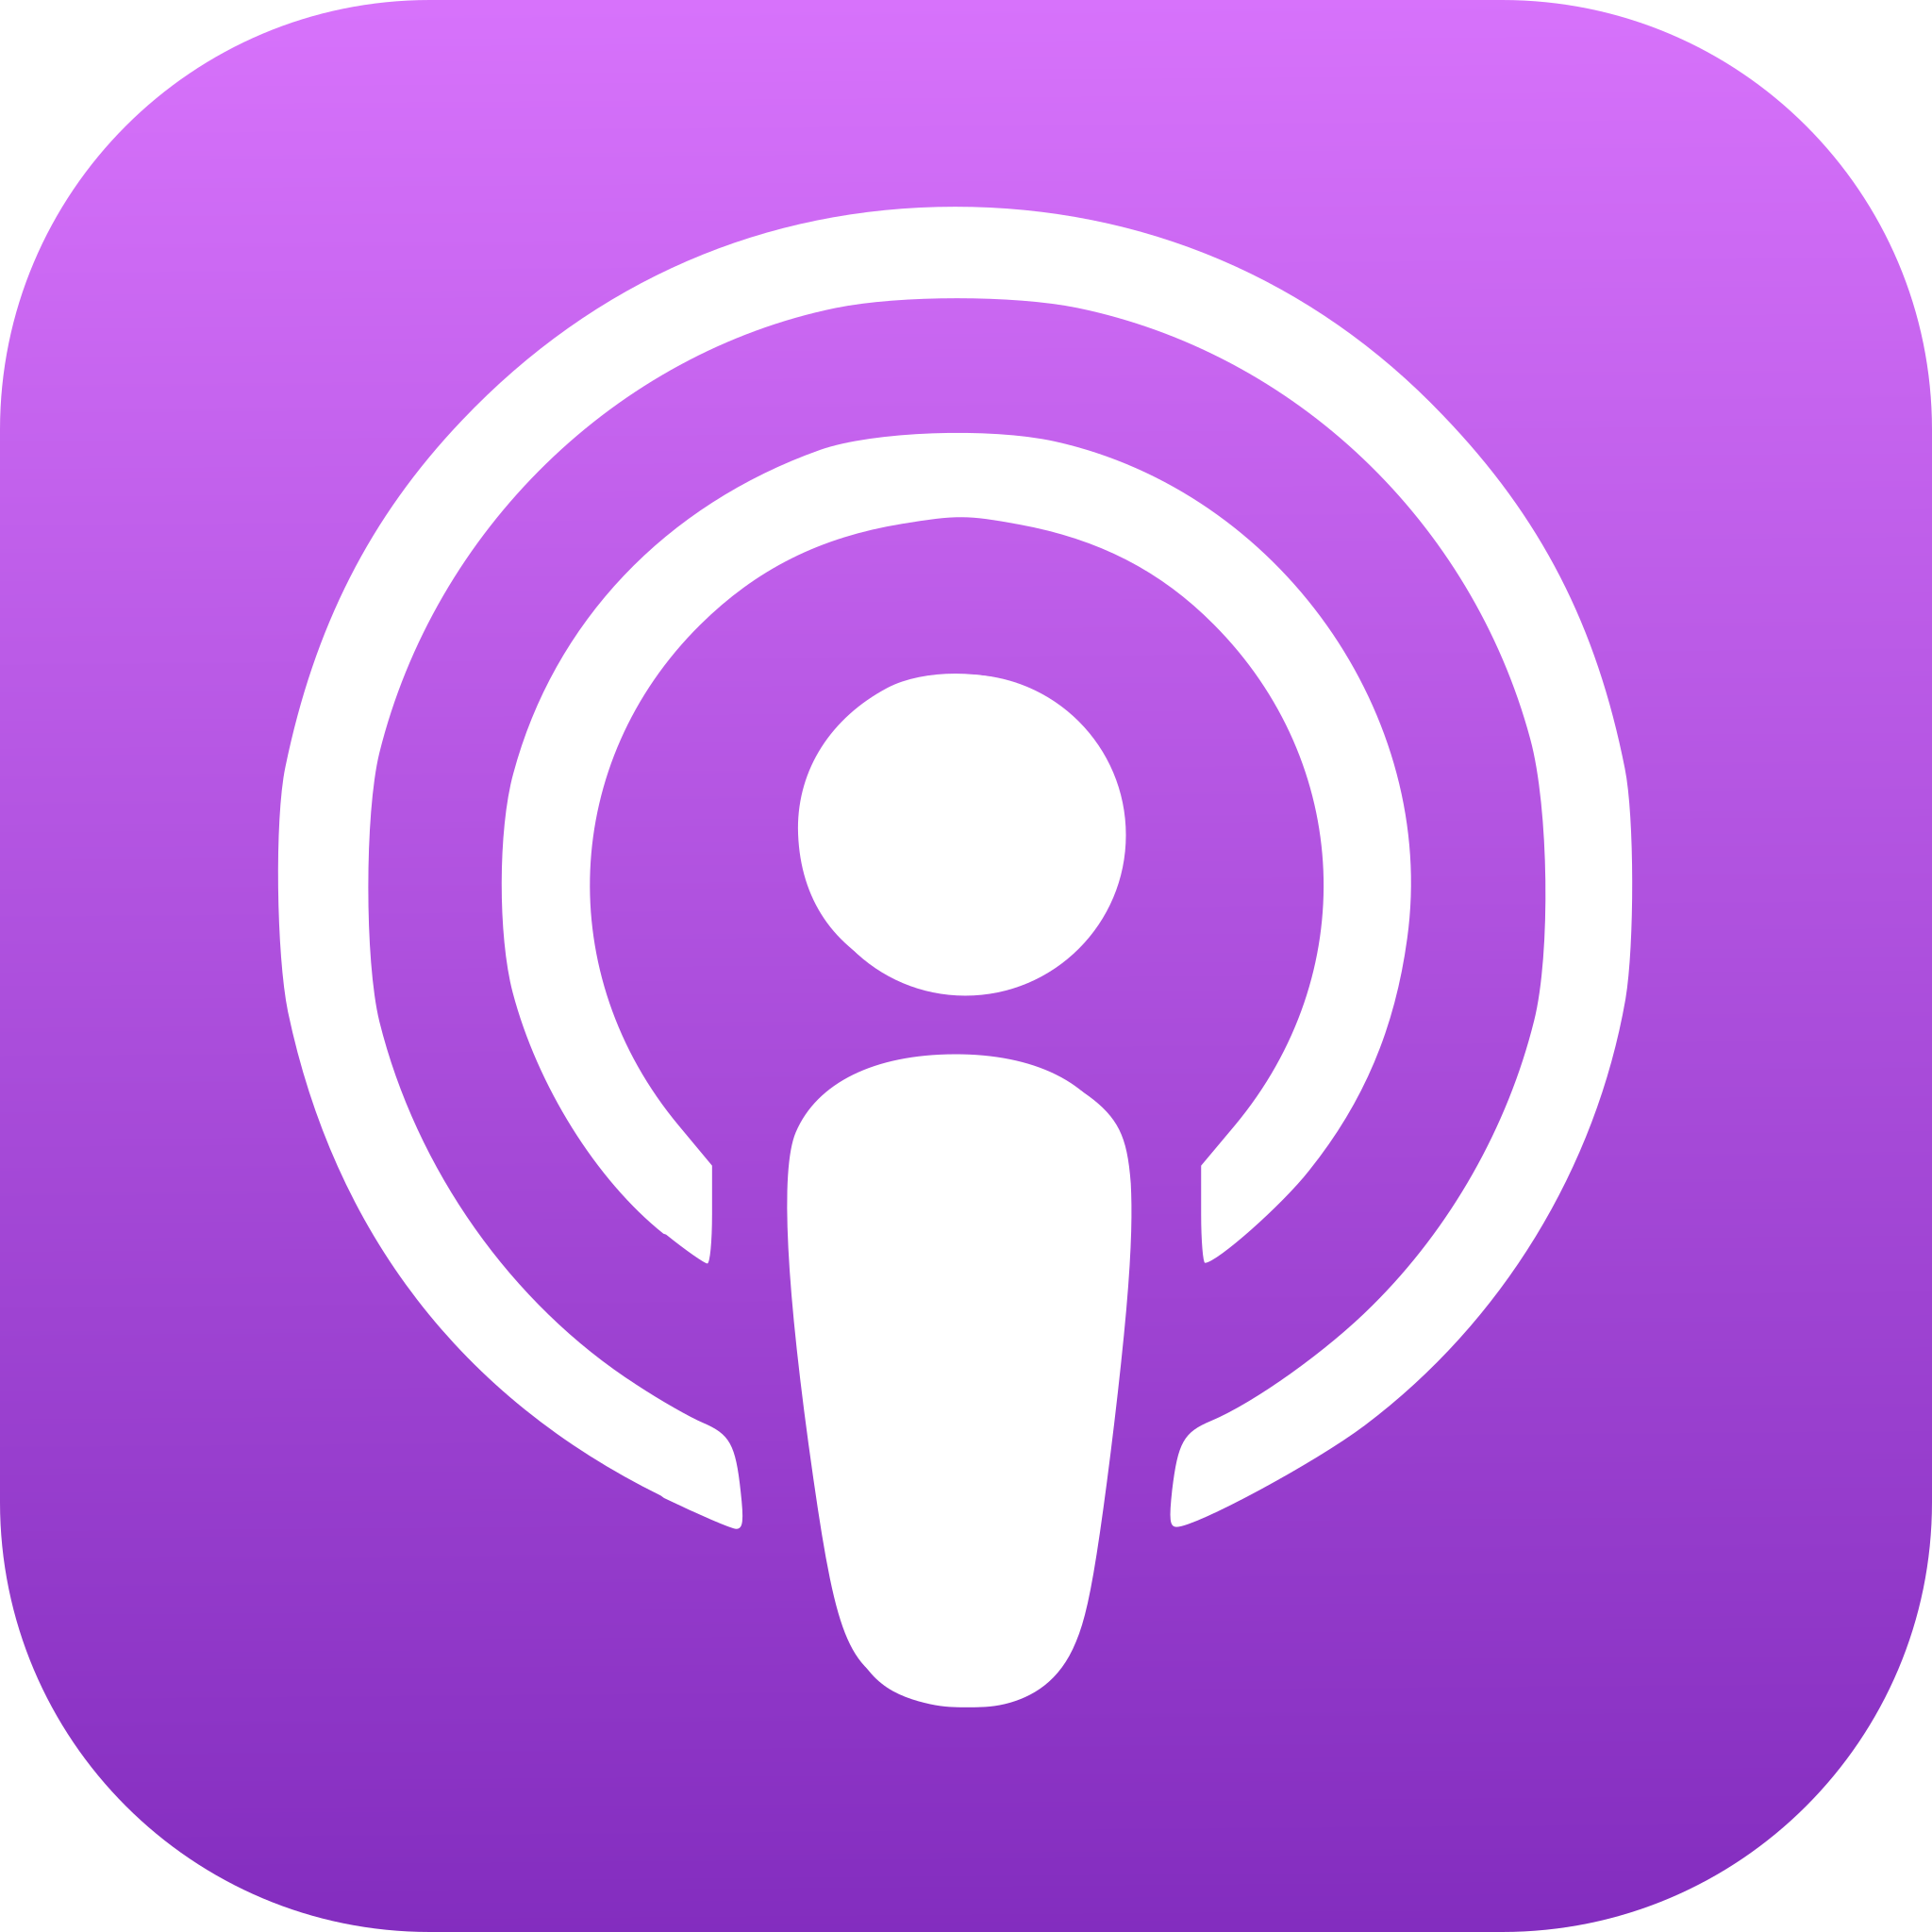 Beyond Words on Apple Podcast